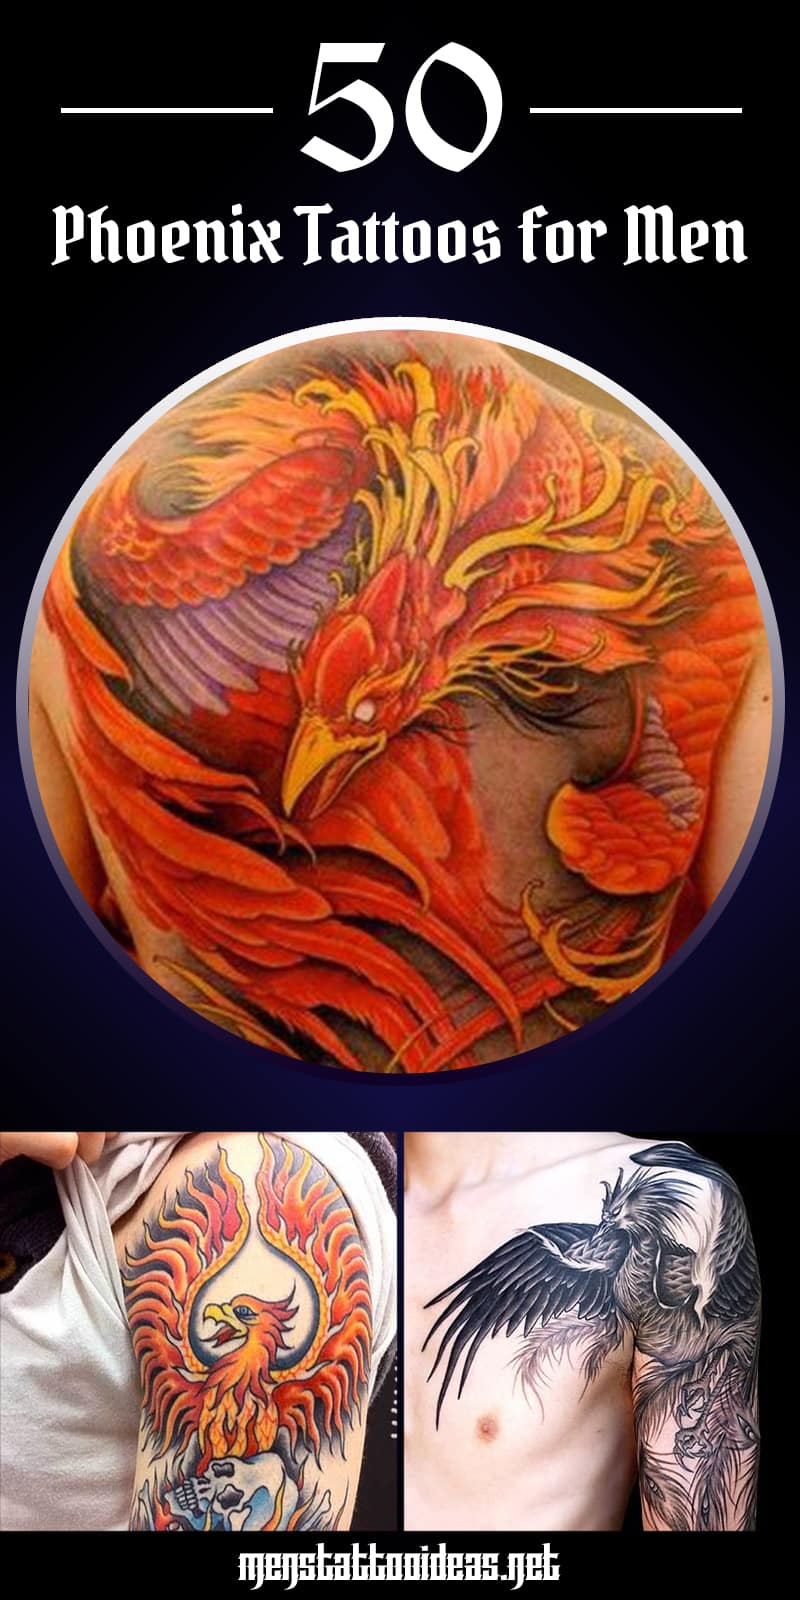 Symbolic meanings of phoenix tattoos for men phoenix tattoo ideas buycottarizona